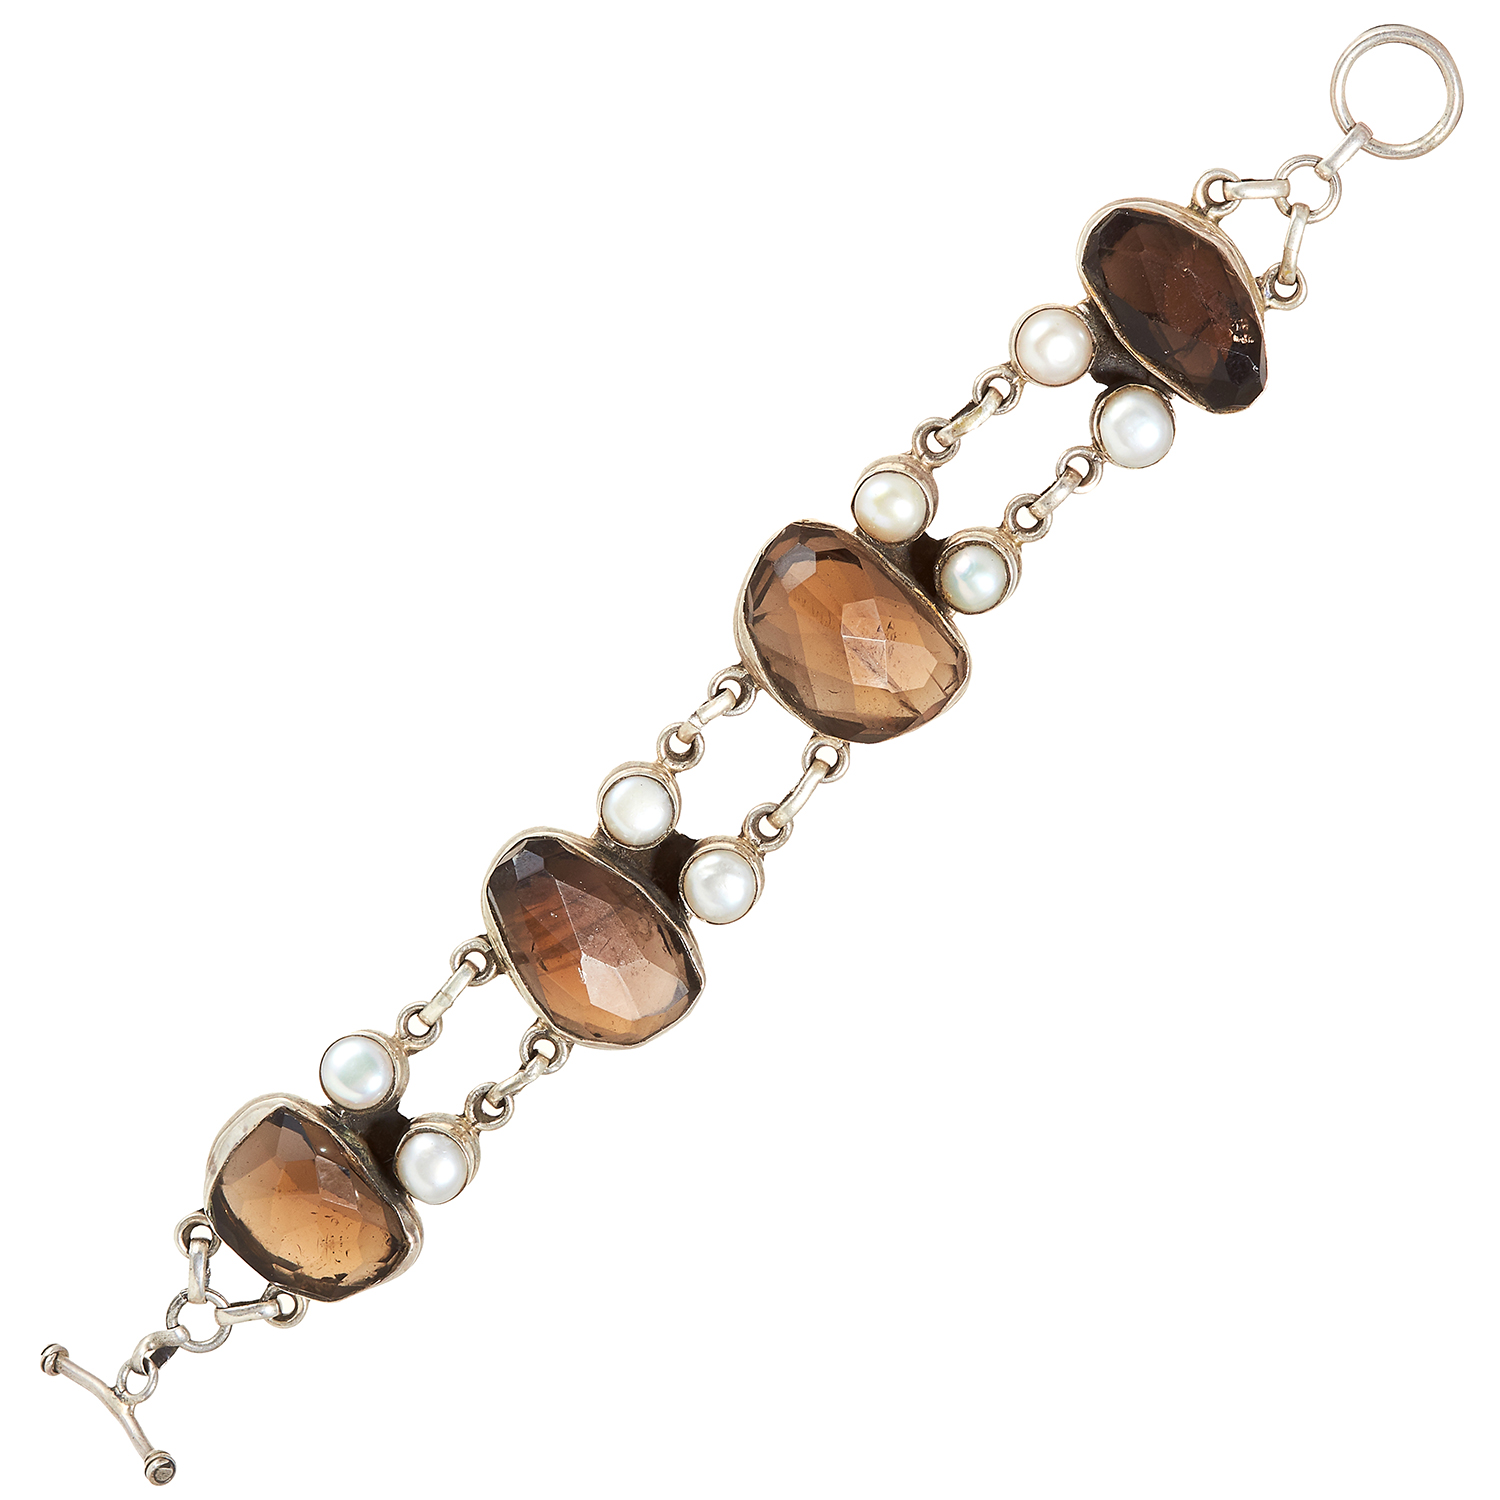 A SMOKEY QUARTZ AND PEARL BRACELET, INDIAN in sterling silver, set with four faceted smokey quartz